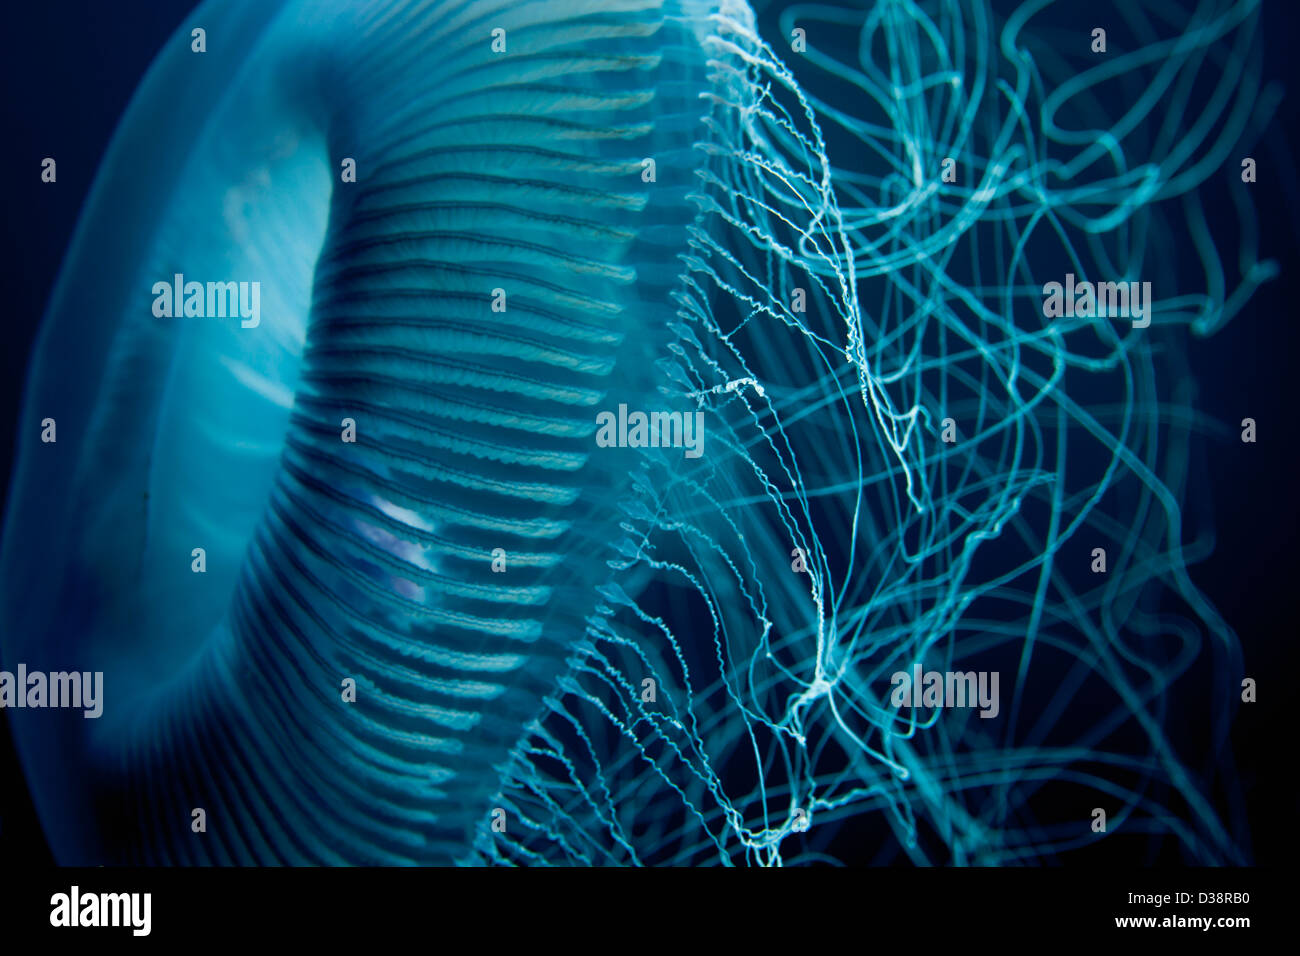 Close up of jellyfish underwater - Stock Image